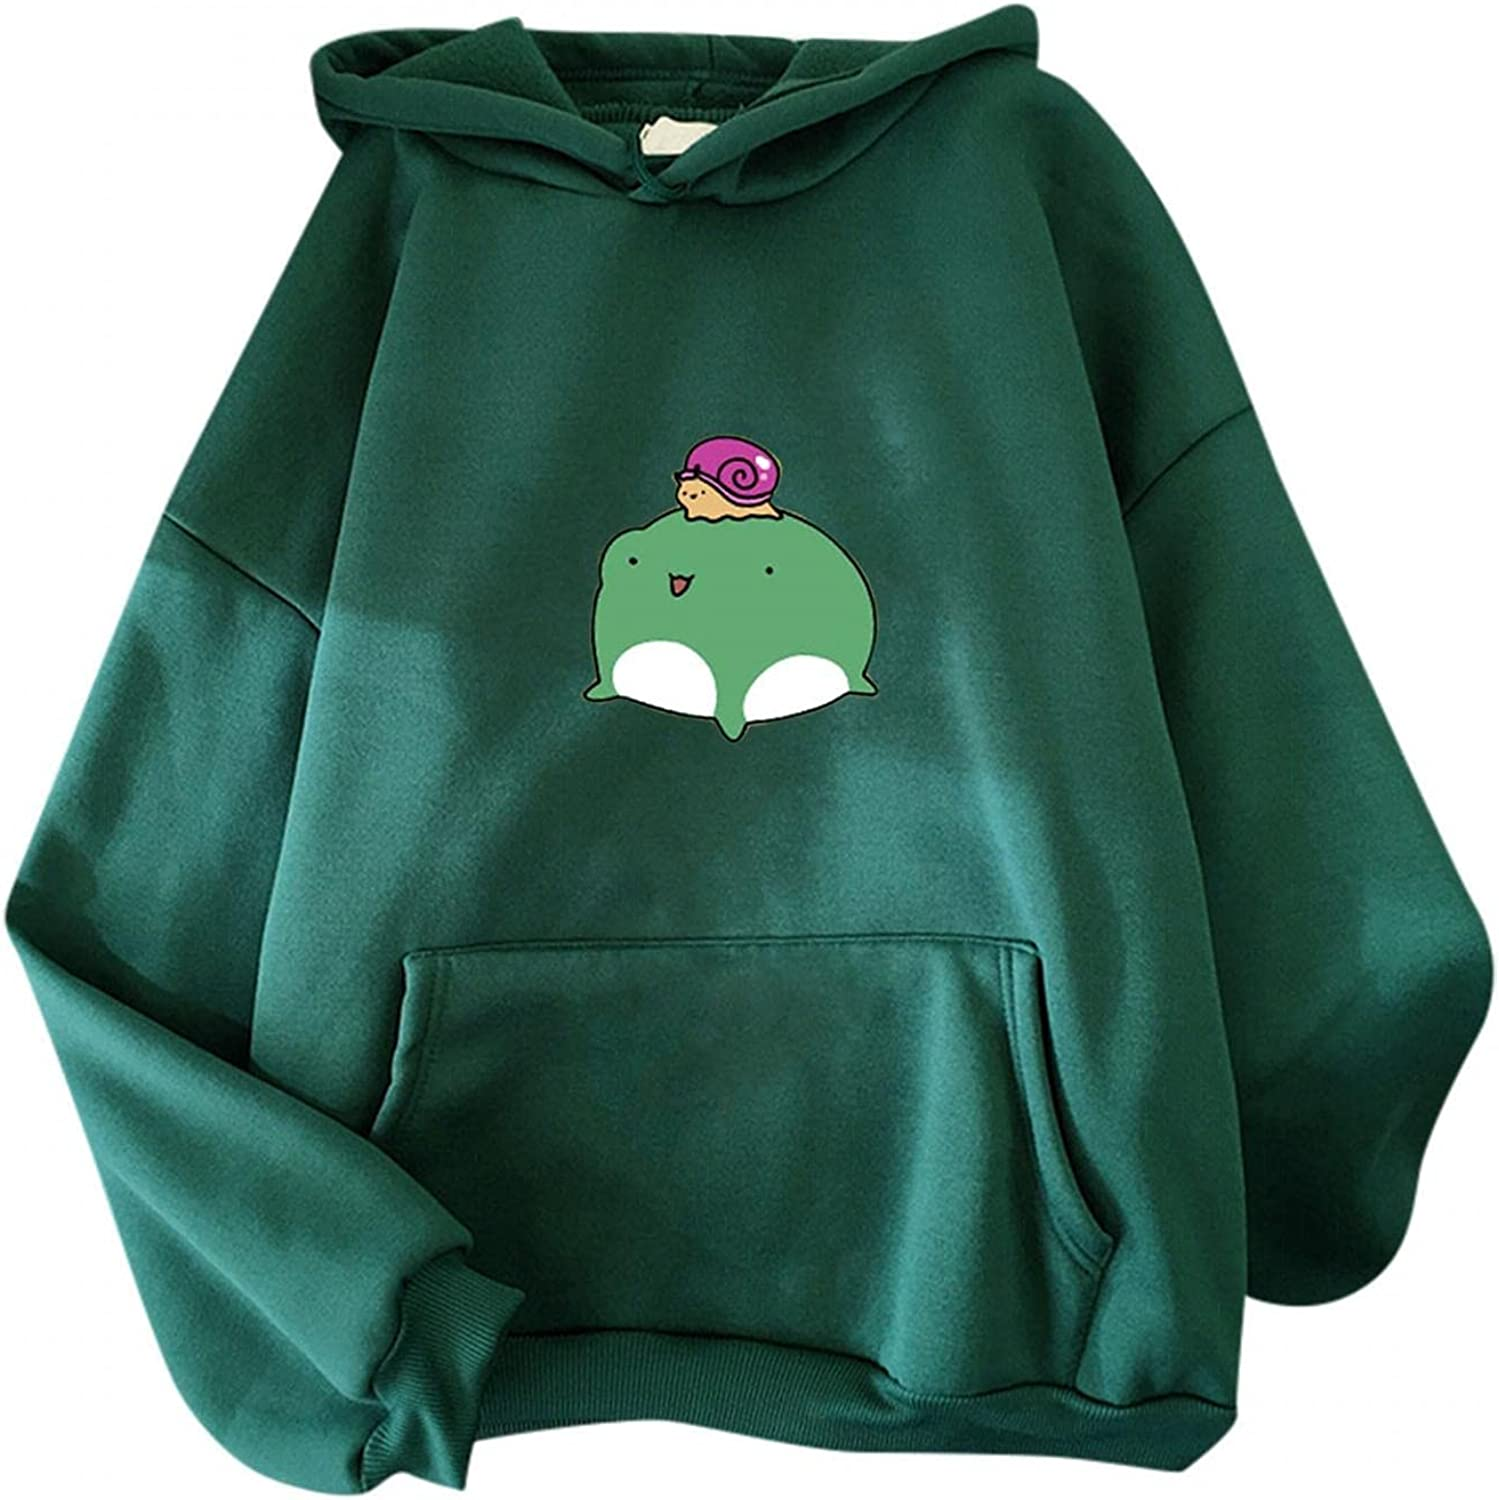 Cute Hoodies for Teen Girls Aesthetic New color Frog Trendy Print Very popular Co Solid